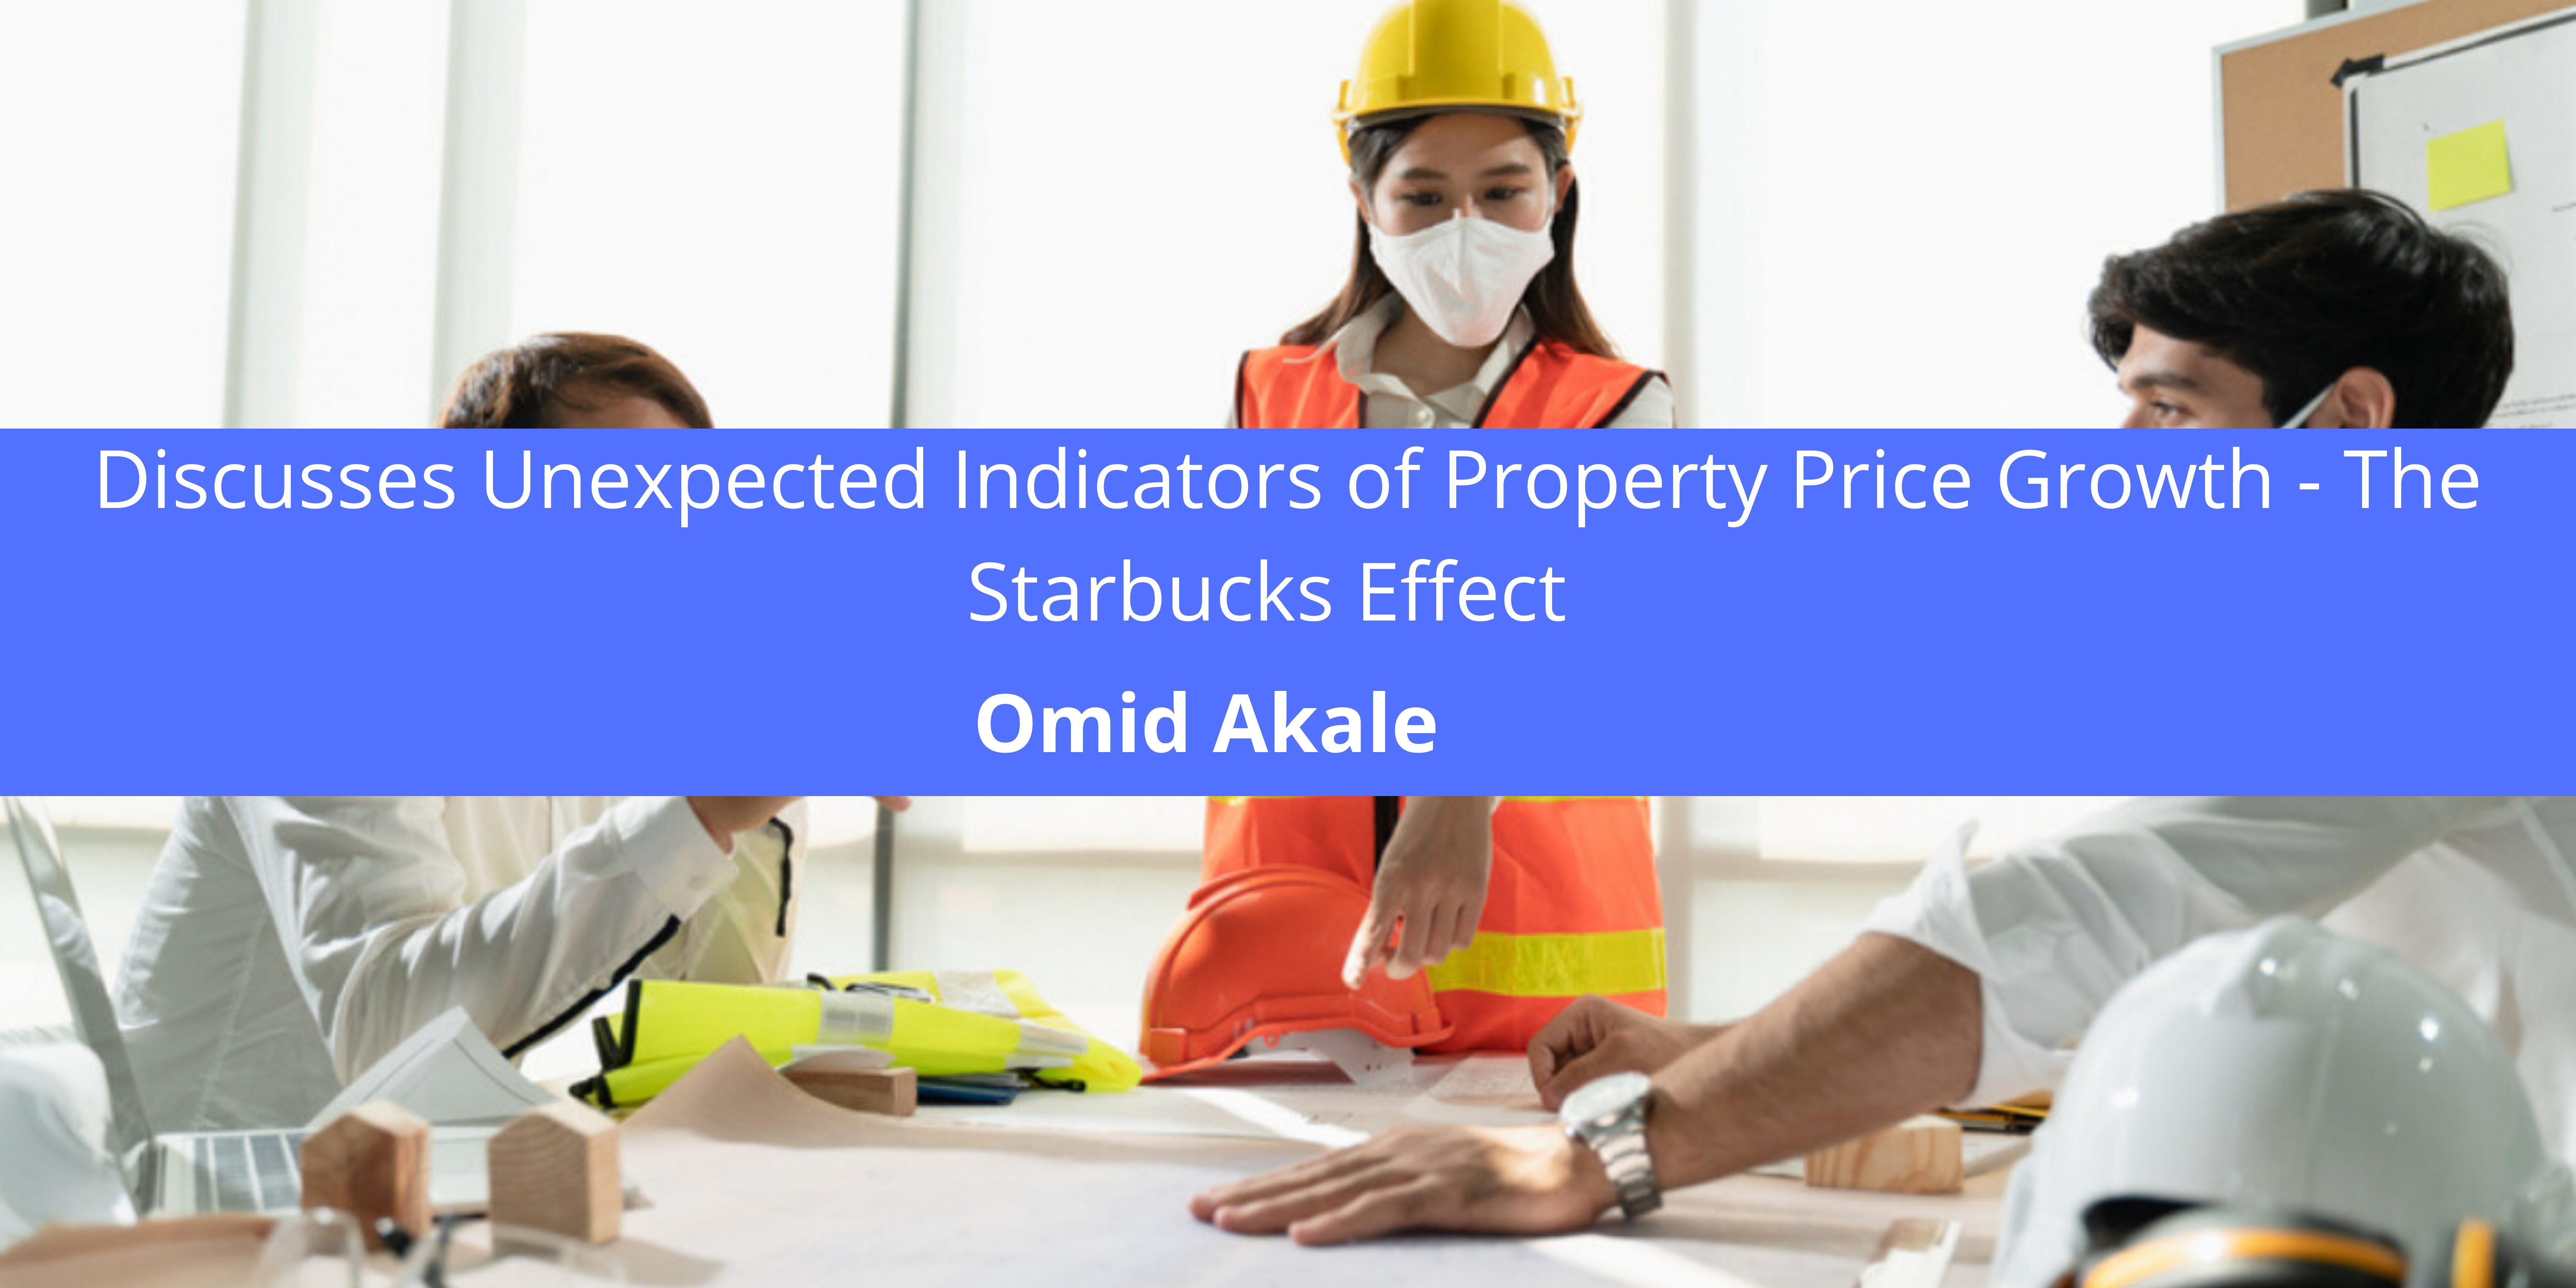 Omid Akale Discusses Unexpected Indicators of Property Price Growth - The Starbucks Effect